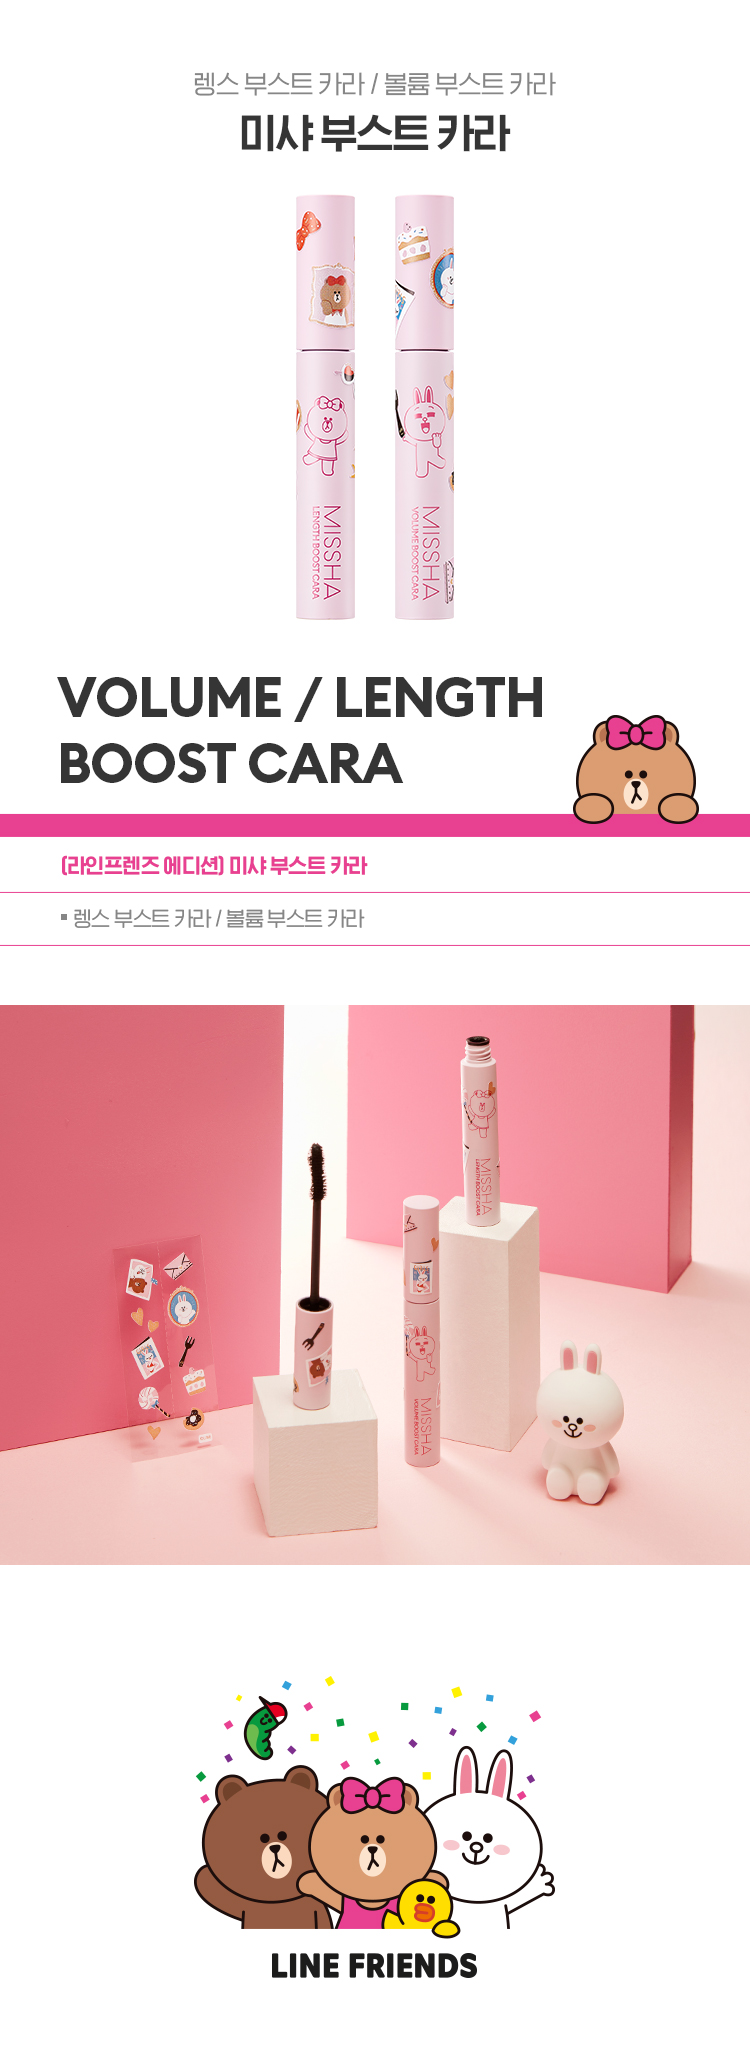 mascara-missha-phien-ban-line-friends-length-volume-boost-cara-8-5g